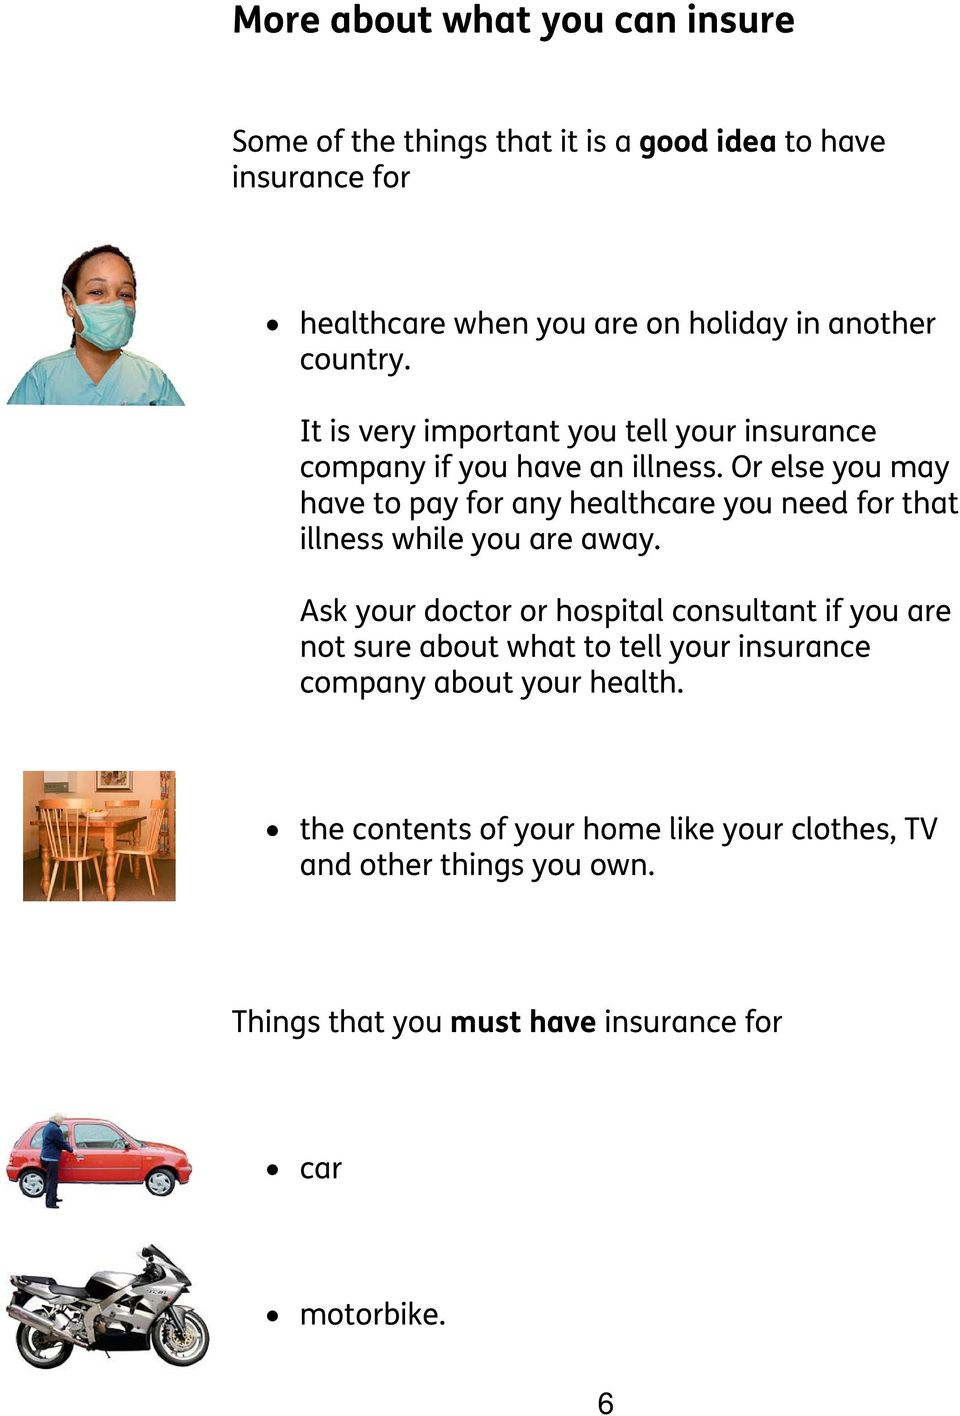 Or else you may have to pay for any healthcare you need for that illness while you are away.